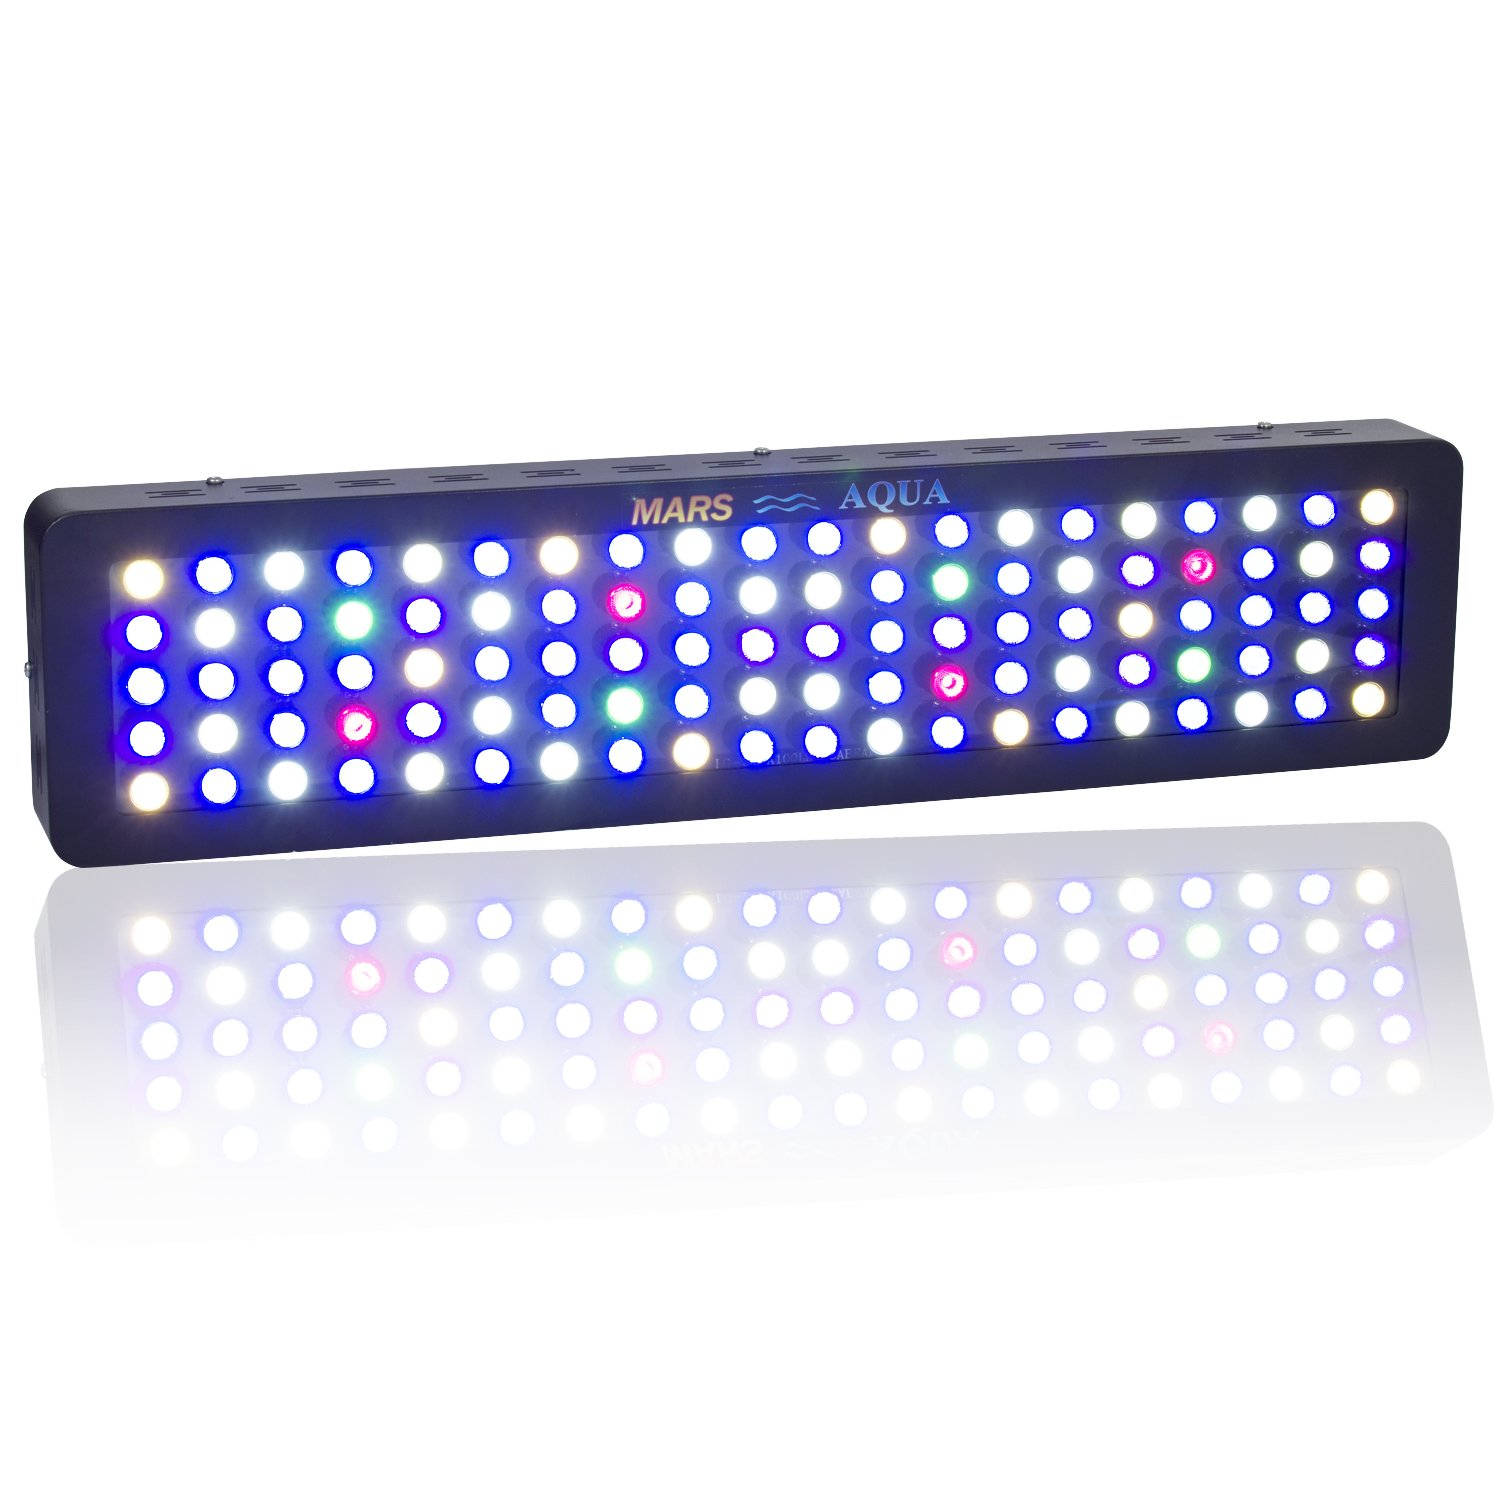 Amazon.com  MarsAqua Dimmable 300w LED Aquarium Light lighting Full Spectrum For Freshwater and Saltwater Fish Coral Tank Blue and White LPS/SPS  Pet ...  sc 1 st  Amazon.com & Amazon.com : MarsAqua Dimmable 300w LED Aquarium Light lighting ... azcodes.com